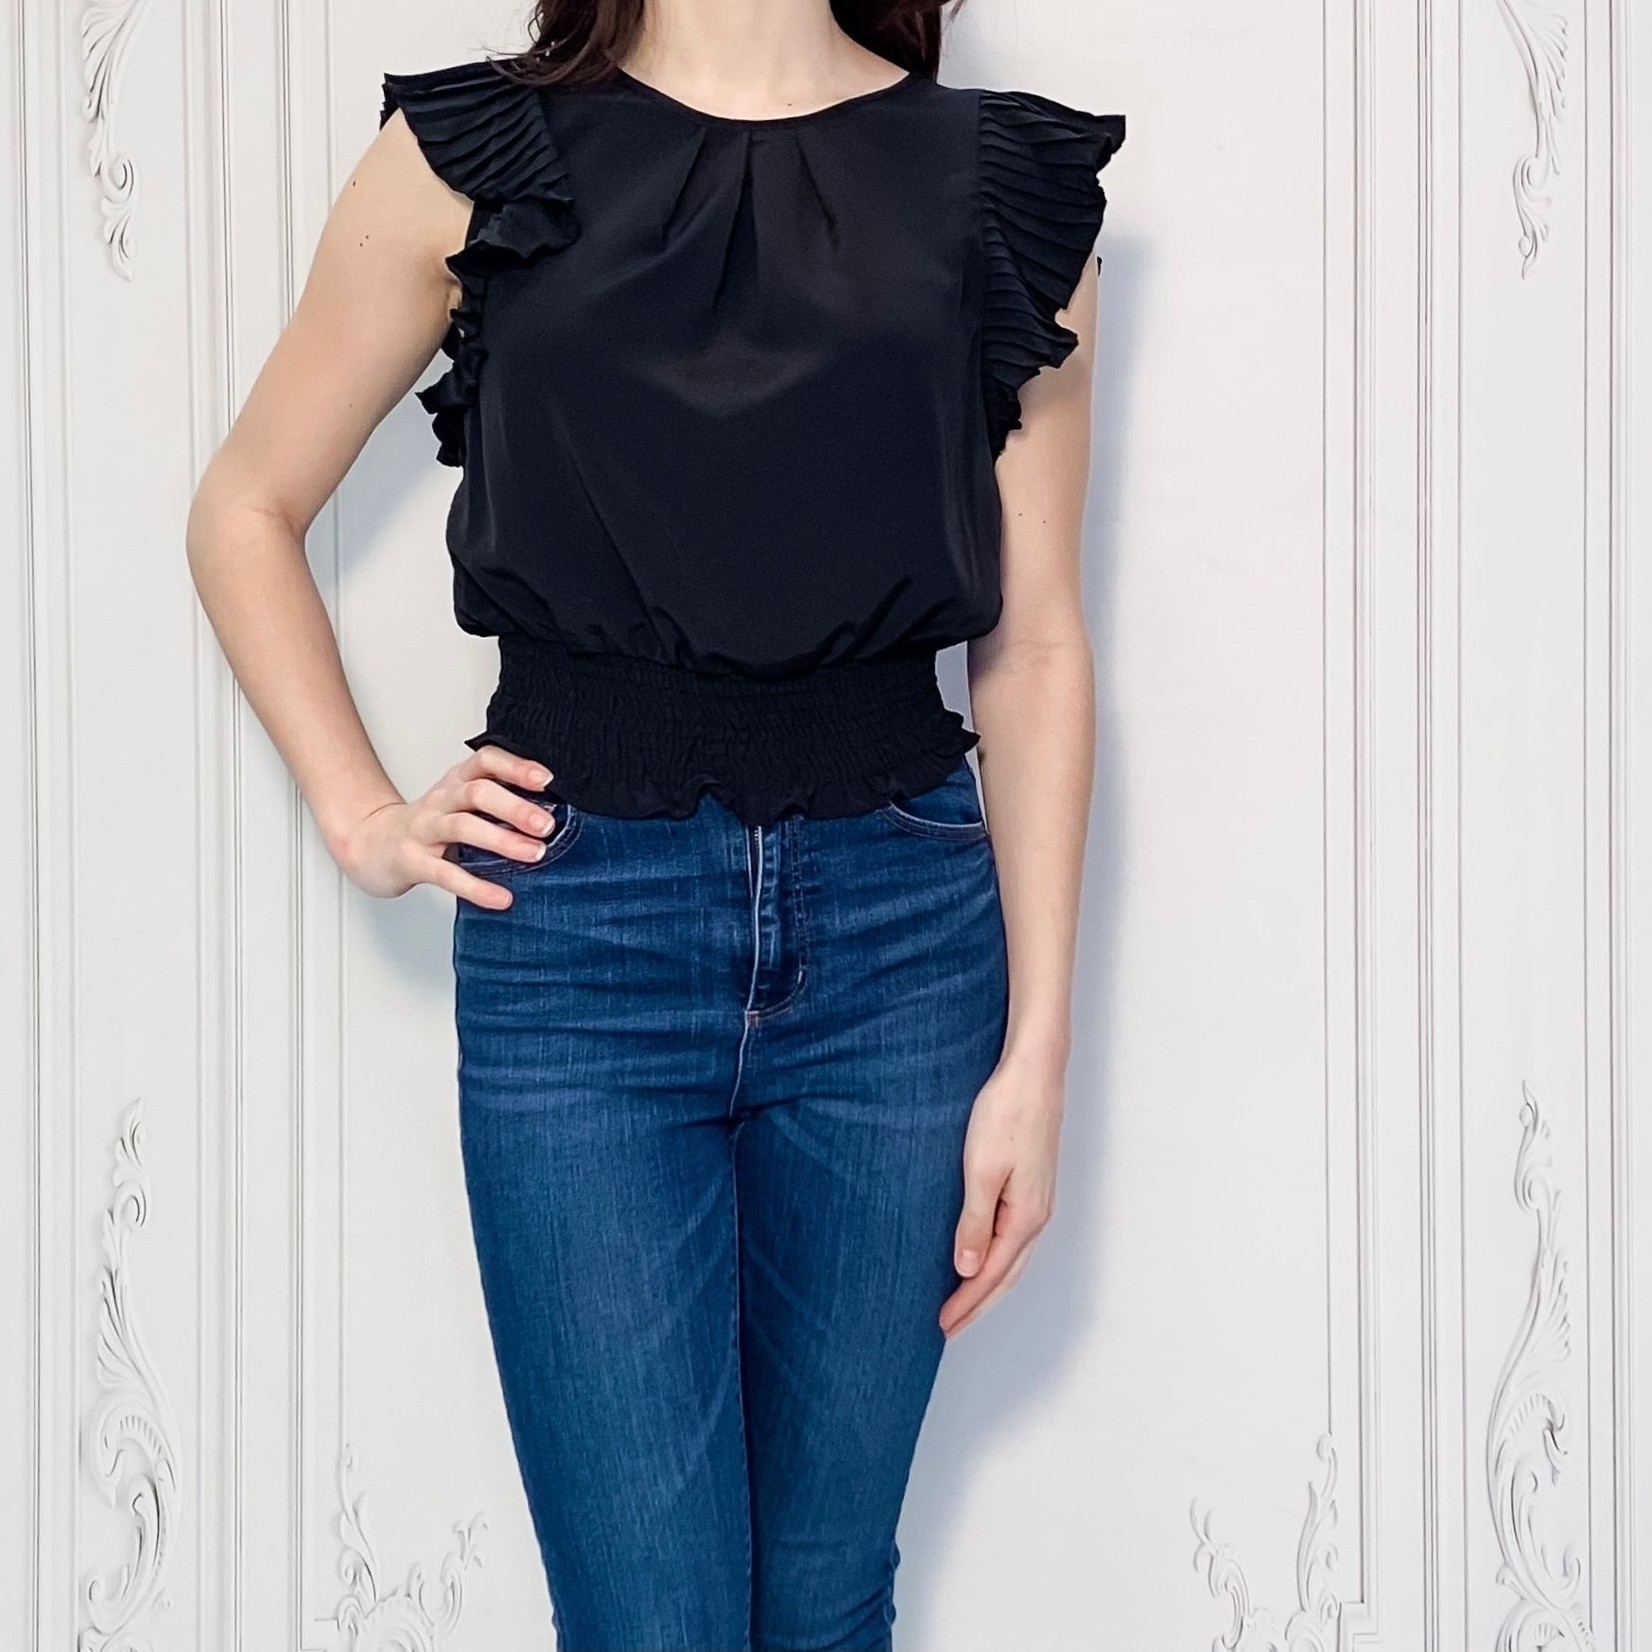 Ireland ruffle sleeve top